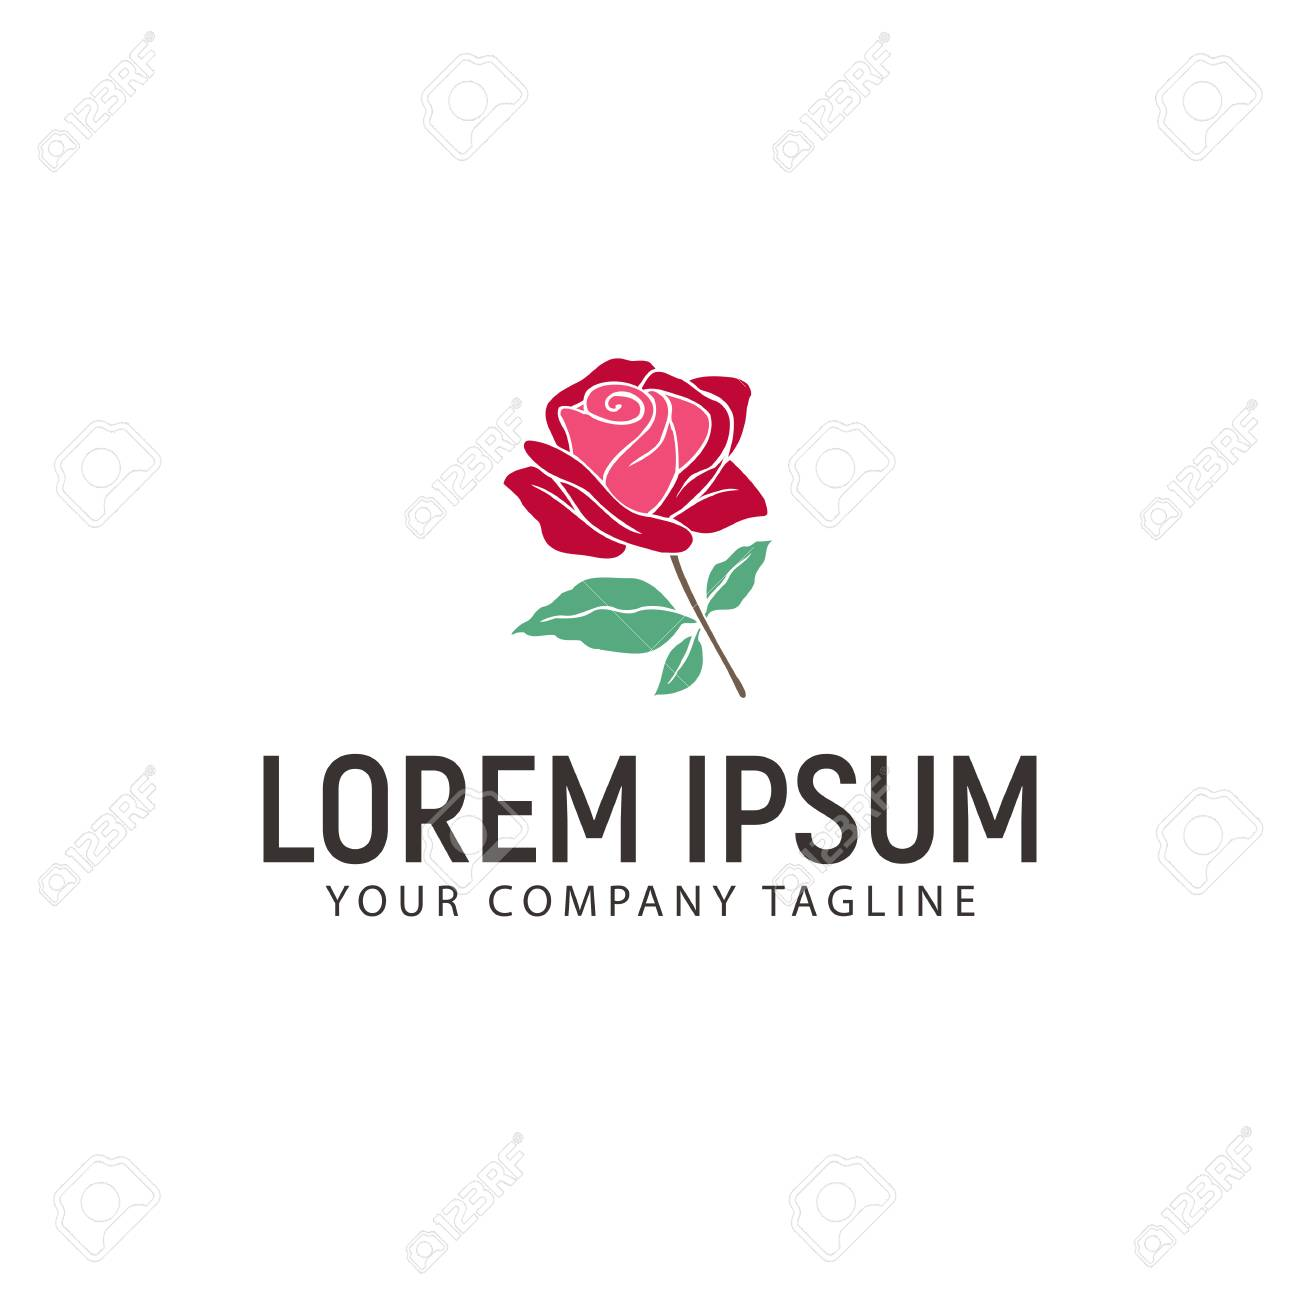 Rose Hand Drawn Logo Design Concept Template